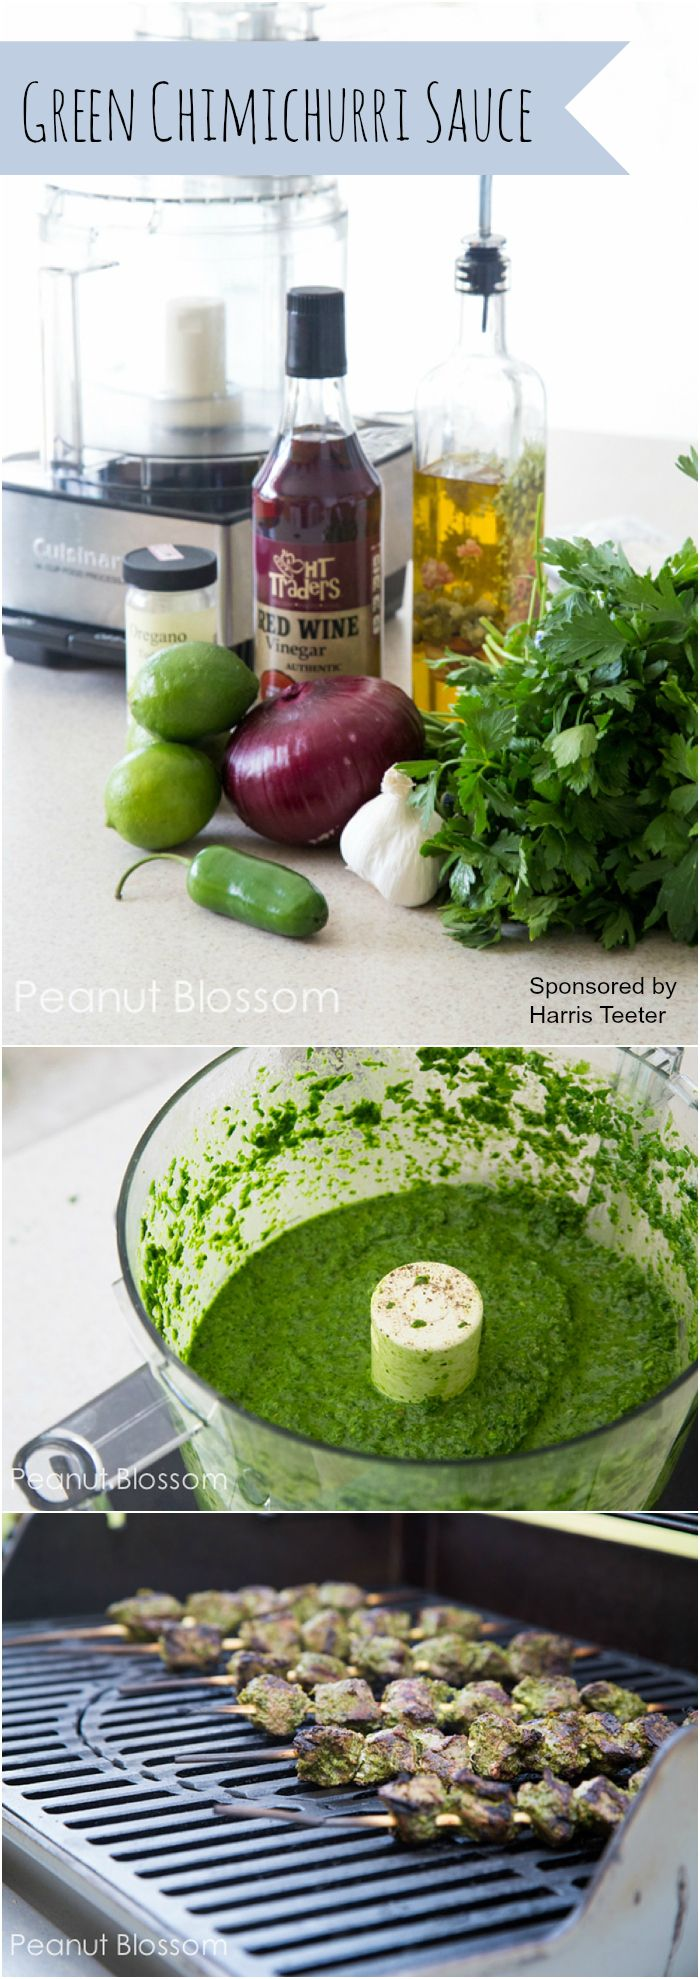 Green Chimichurri Sauce by peanutblossom.com: Awesome marinade and sauce for grilled steak. So fresh and bright!  #Chimichurri_Sauce